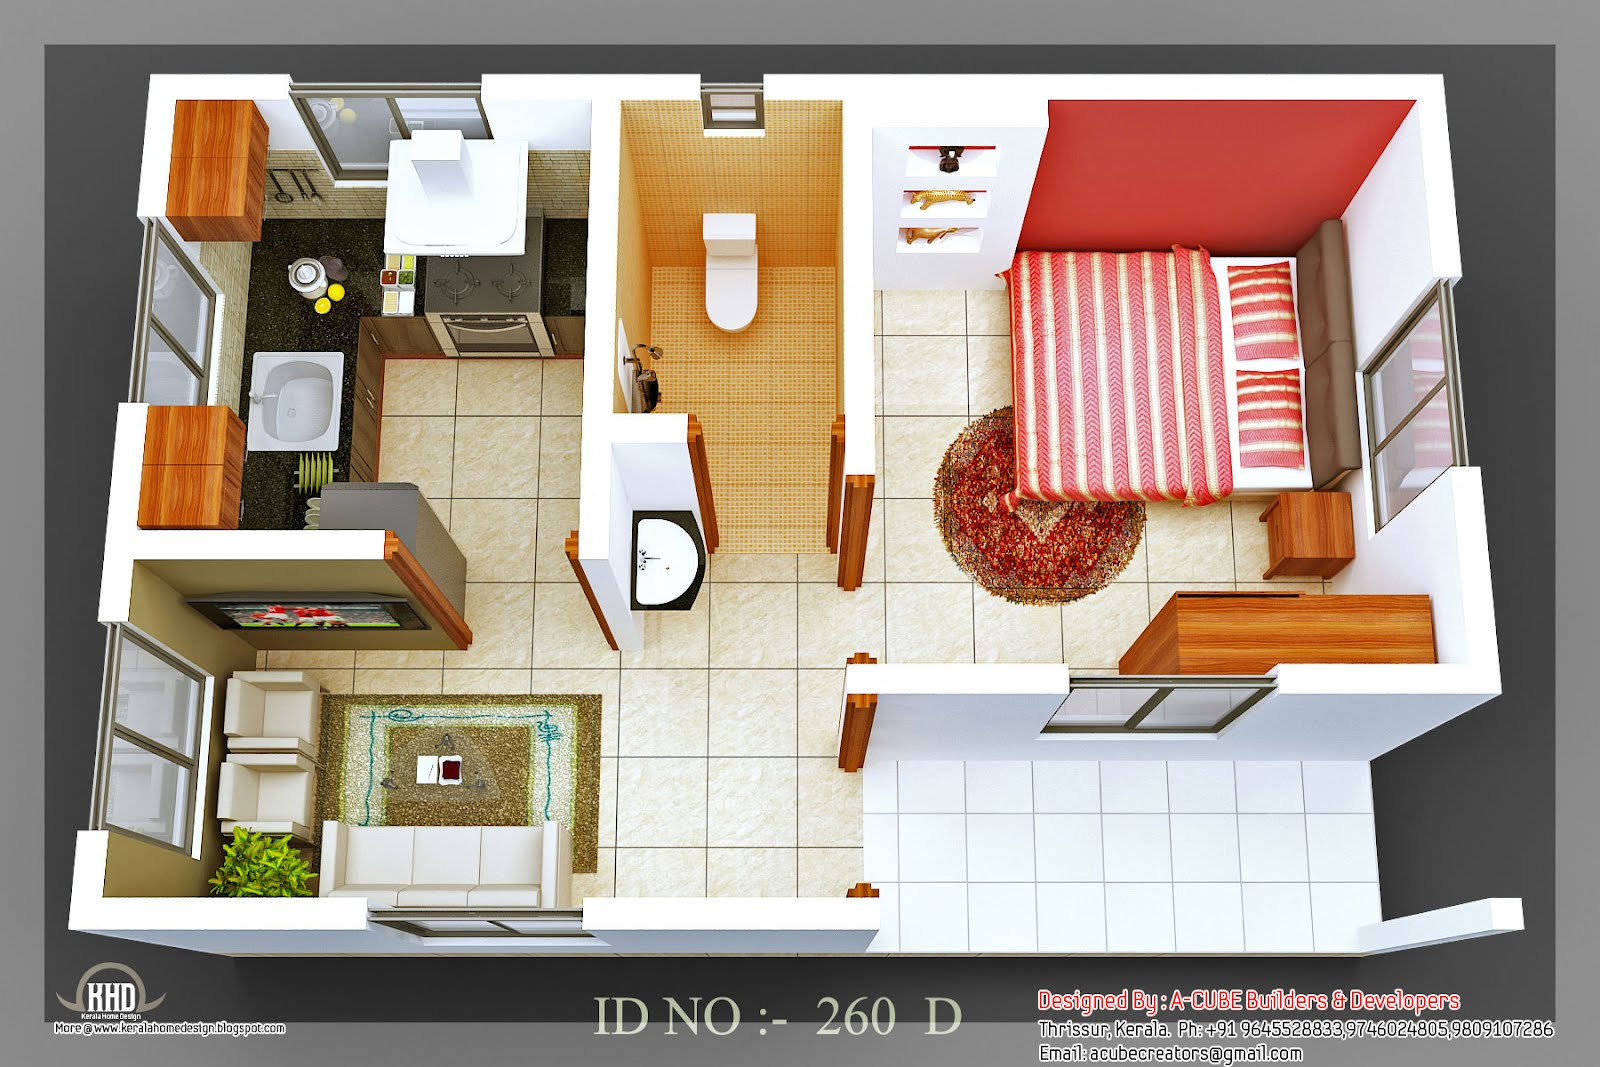 3D isometric views of small house plans | a taste in heaven